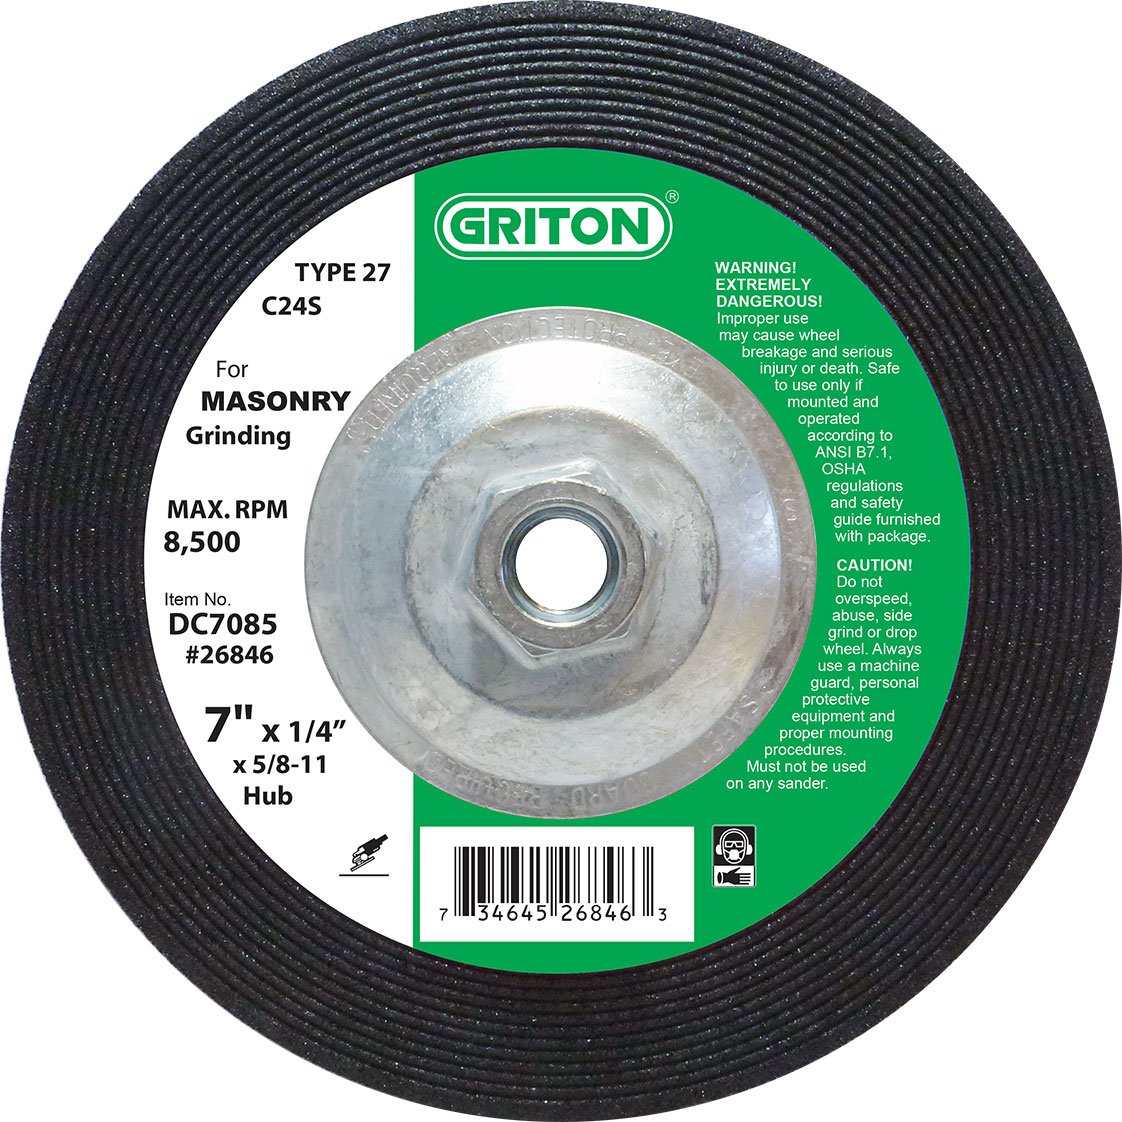 Griton DC7085 Type 27 Grinding Wheel Used on Masonry with Hub, Silicon Carbide, 8500 RPM, 7'' Diameter (Pack of 10)